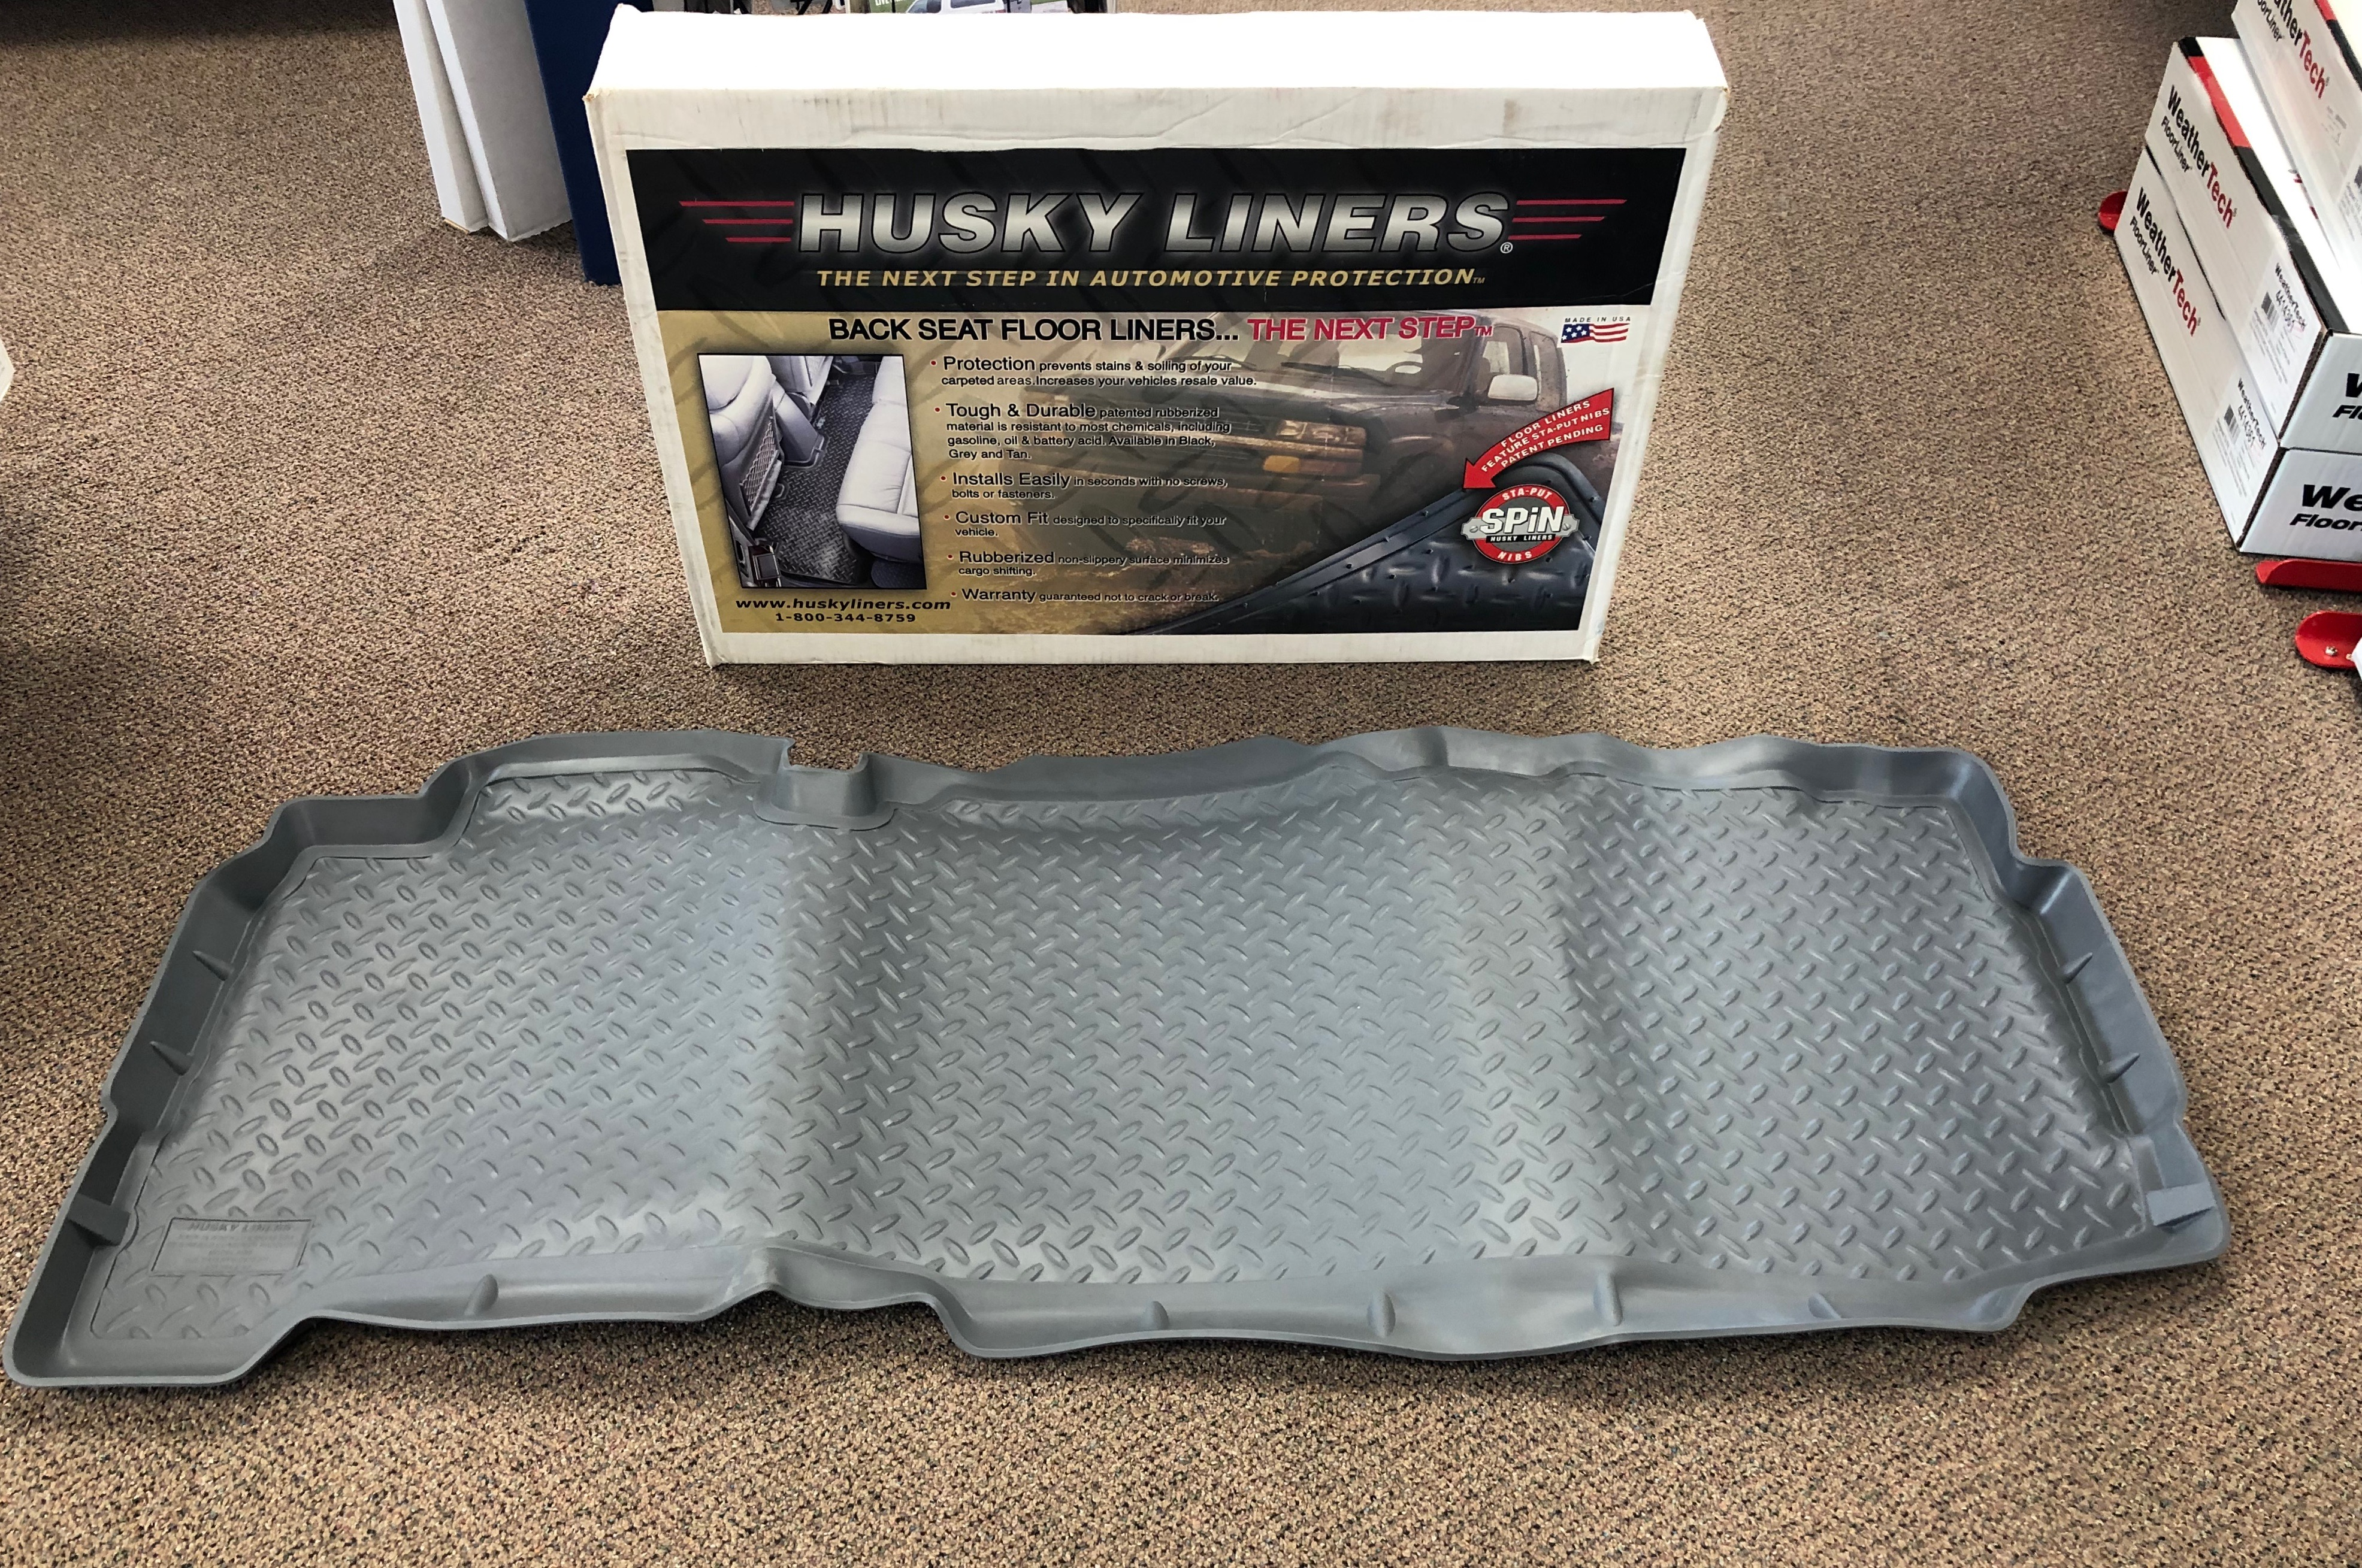 Husky Liners-Rear Image